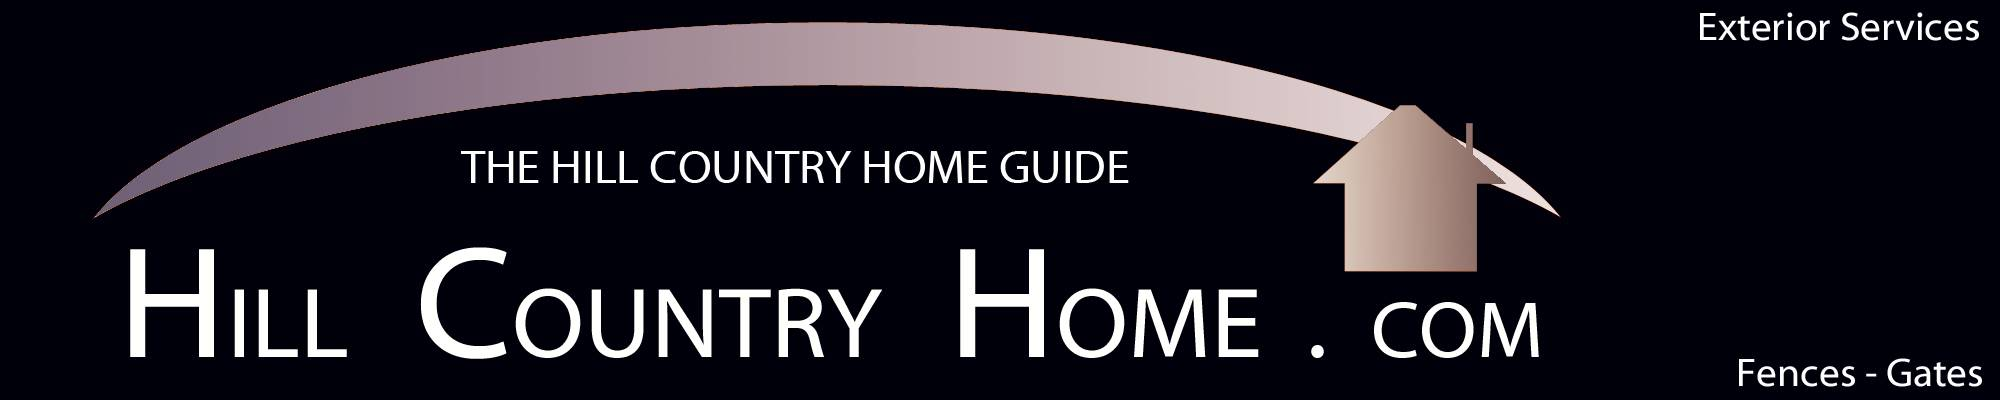 The Hill Country Home Guide For Central Texas Fences And Gates Home Builders Architects Contractors Decorators Landscaping And Property For Sale Wimberley San Marcos Dripping Springs Kyle Fredericksburg Austin Blanco